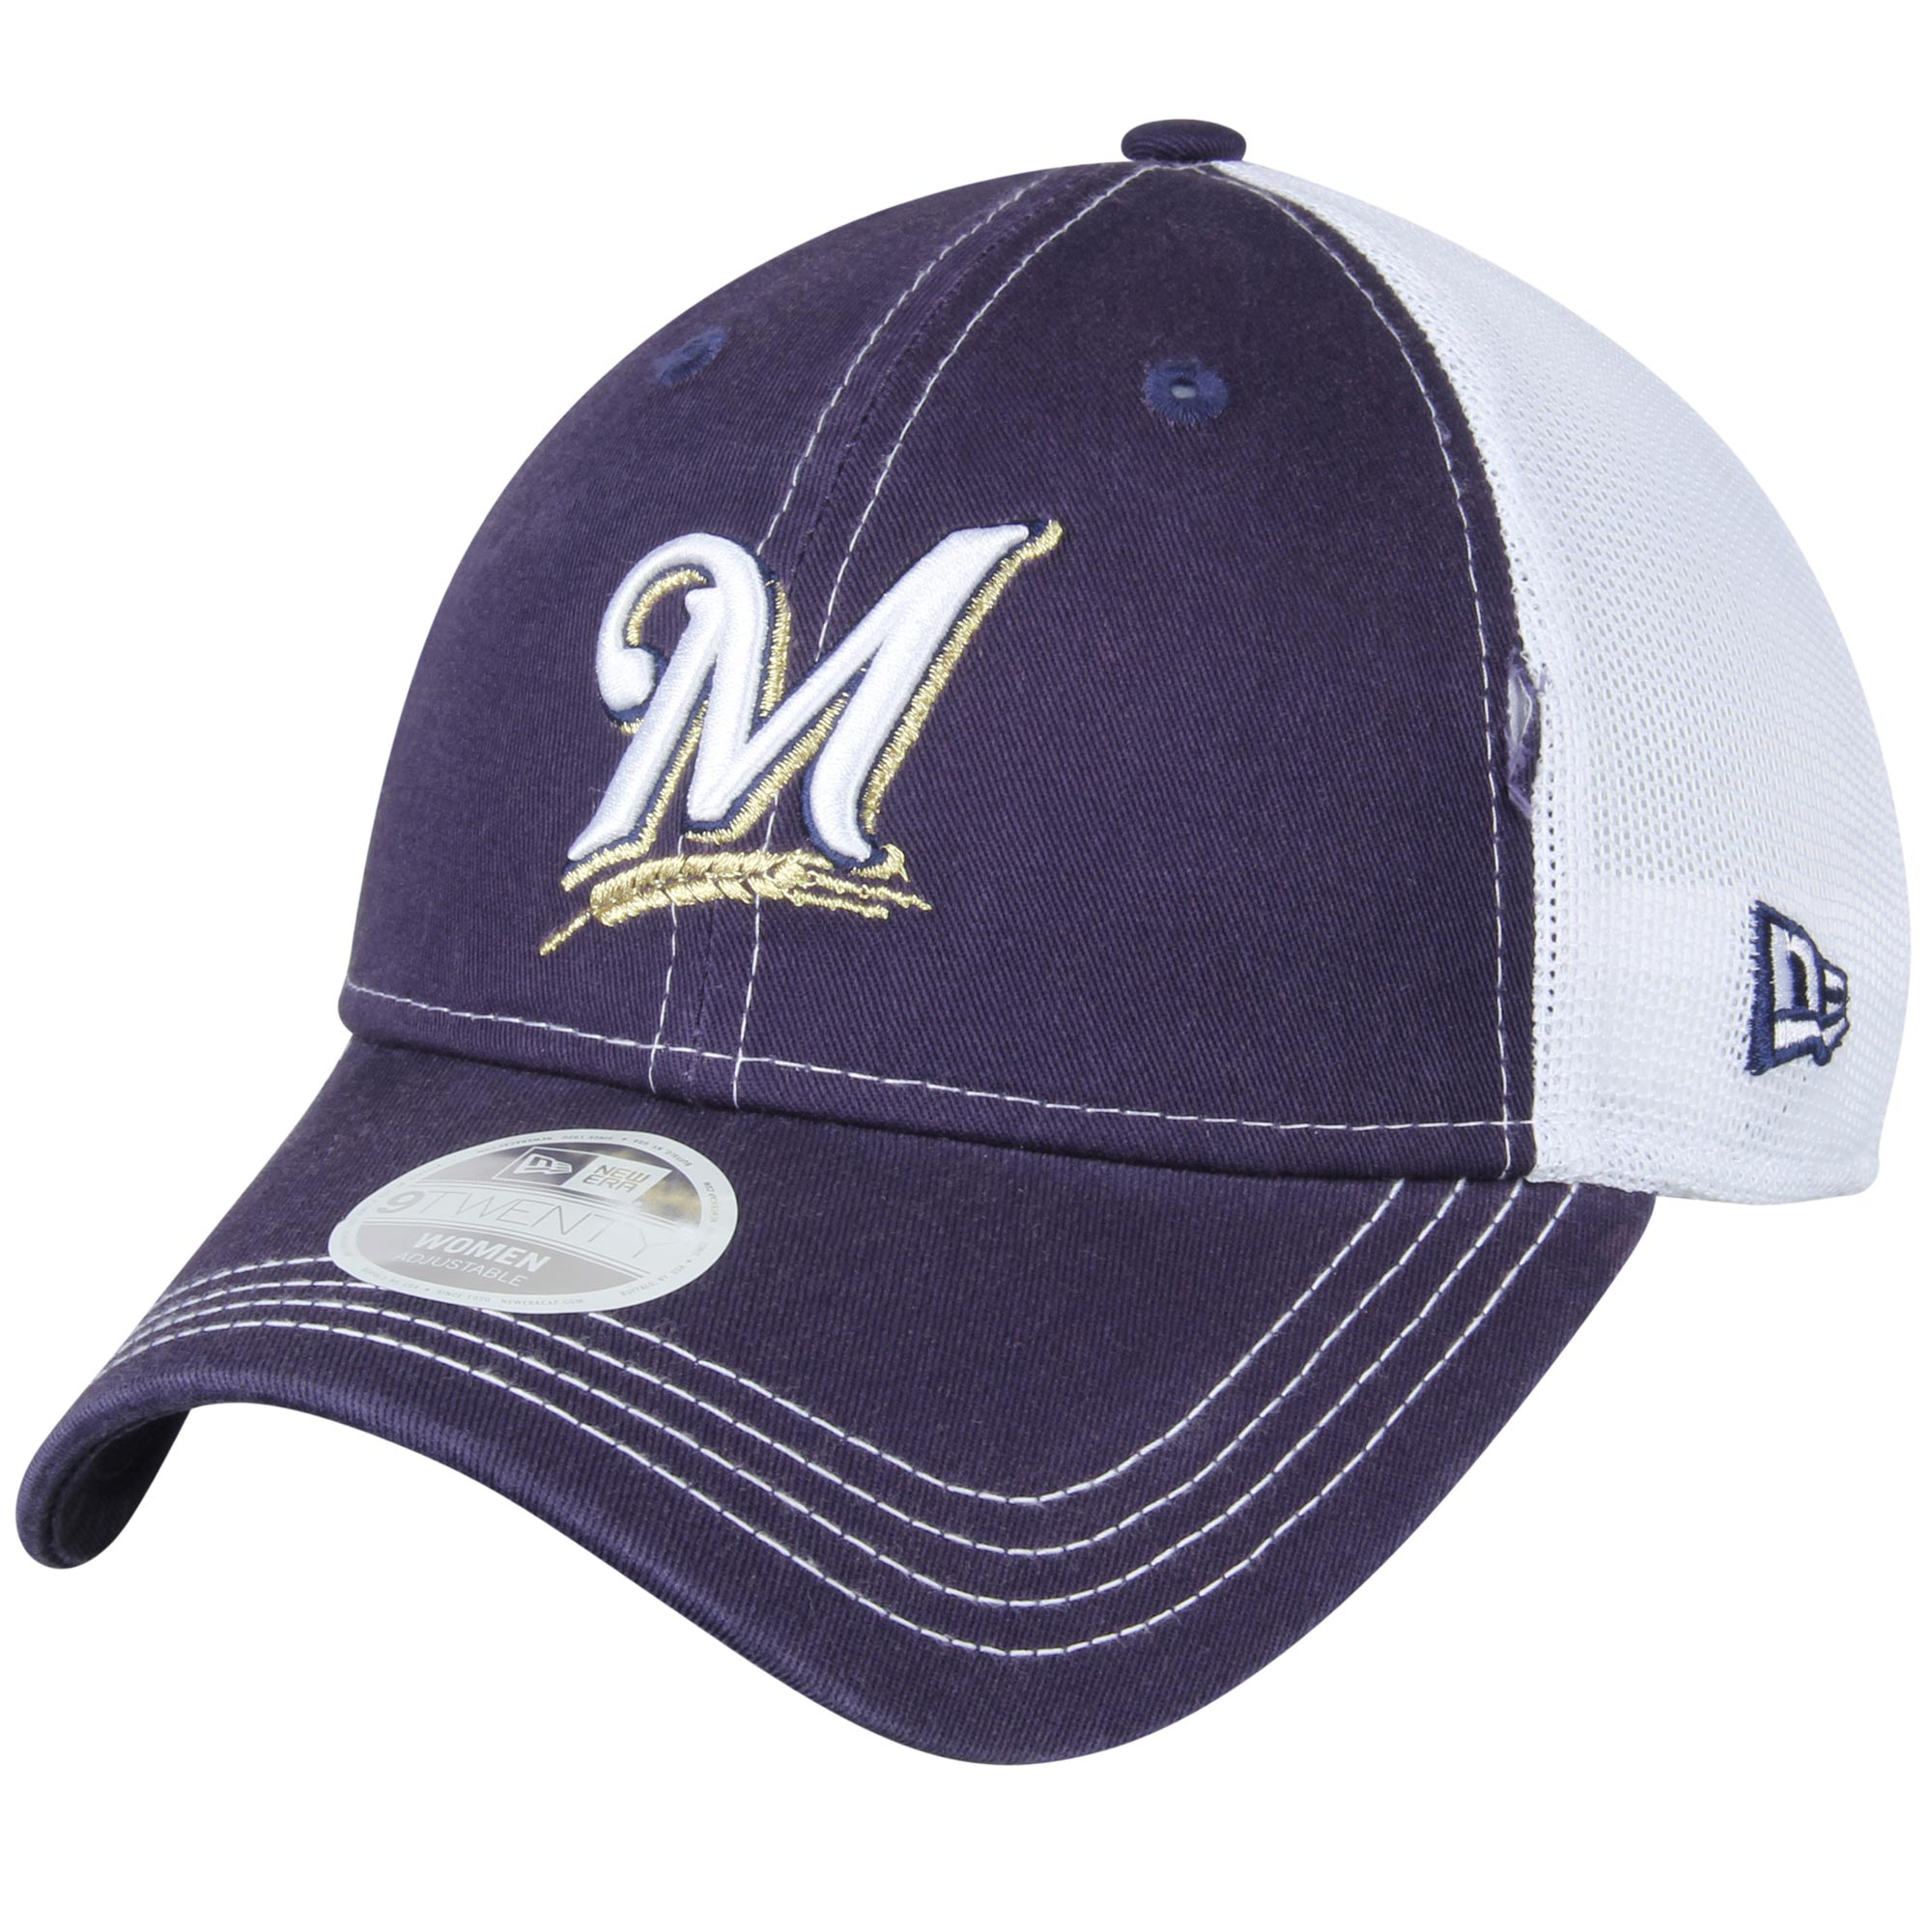 5574849a46f5c ... discount code for milwaukee brewers new era womens spirited 9twenty  adjustable hat navy osfa d6e32 3f742